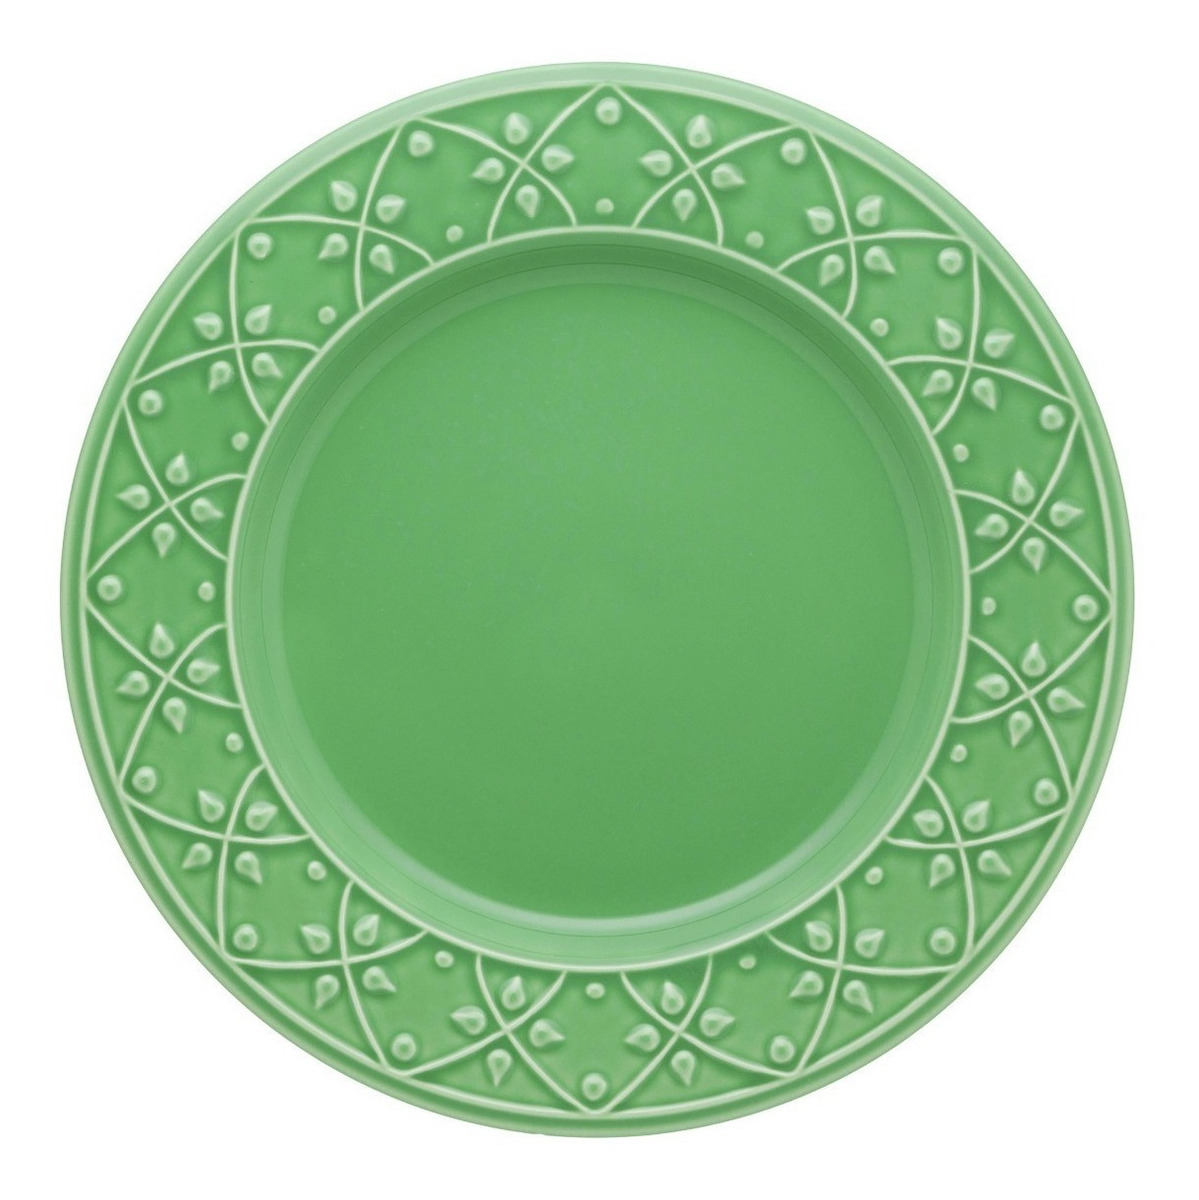 Plato Playo 26 Cm Ceramica Oxford Salvia Verde Fino Relieve